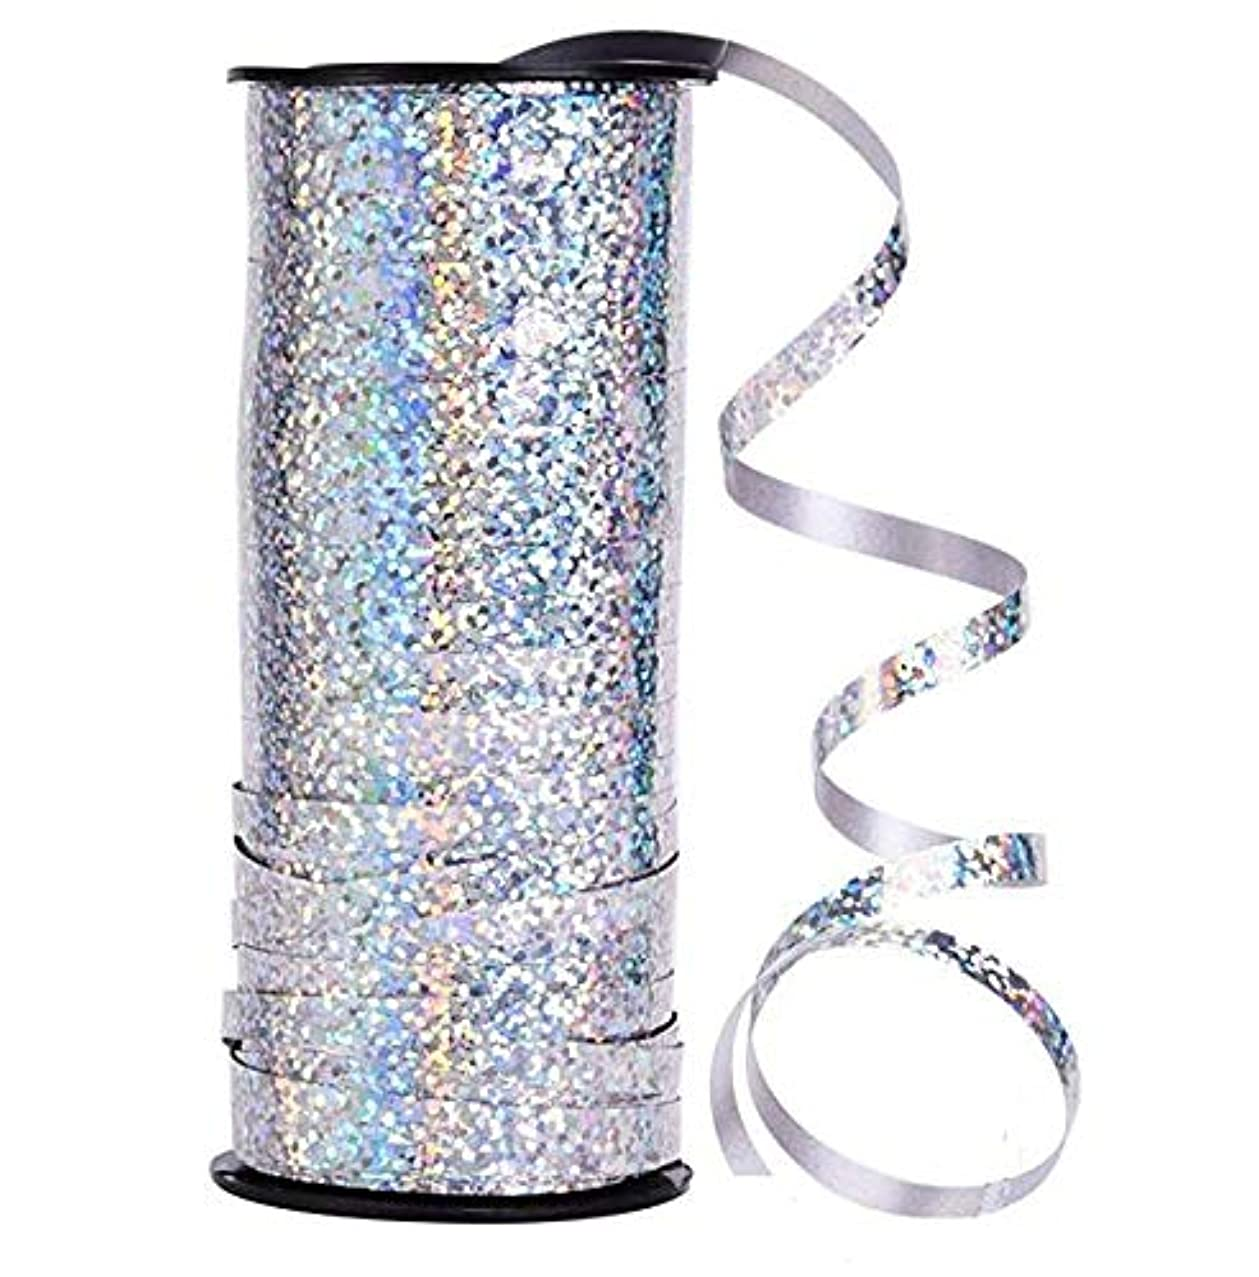 DNHCLL 5 mm Width Crimped Curling Ribbon Roll,100 Yard Metallic Silver Balloon Ribbons Strings for Parties, Festival, Florist, Crafts and Gift Wrapping